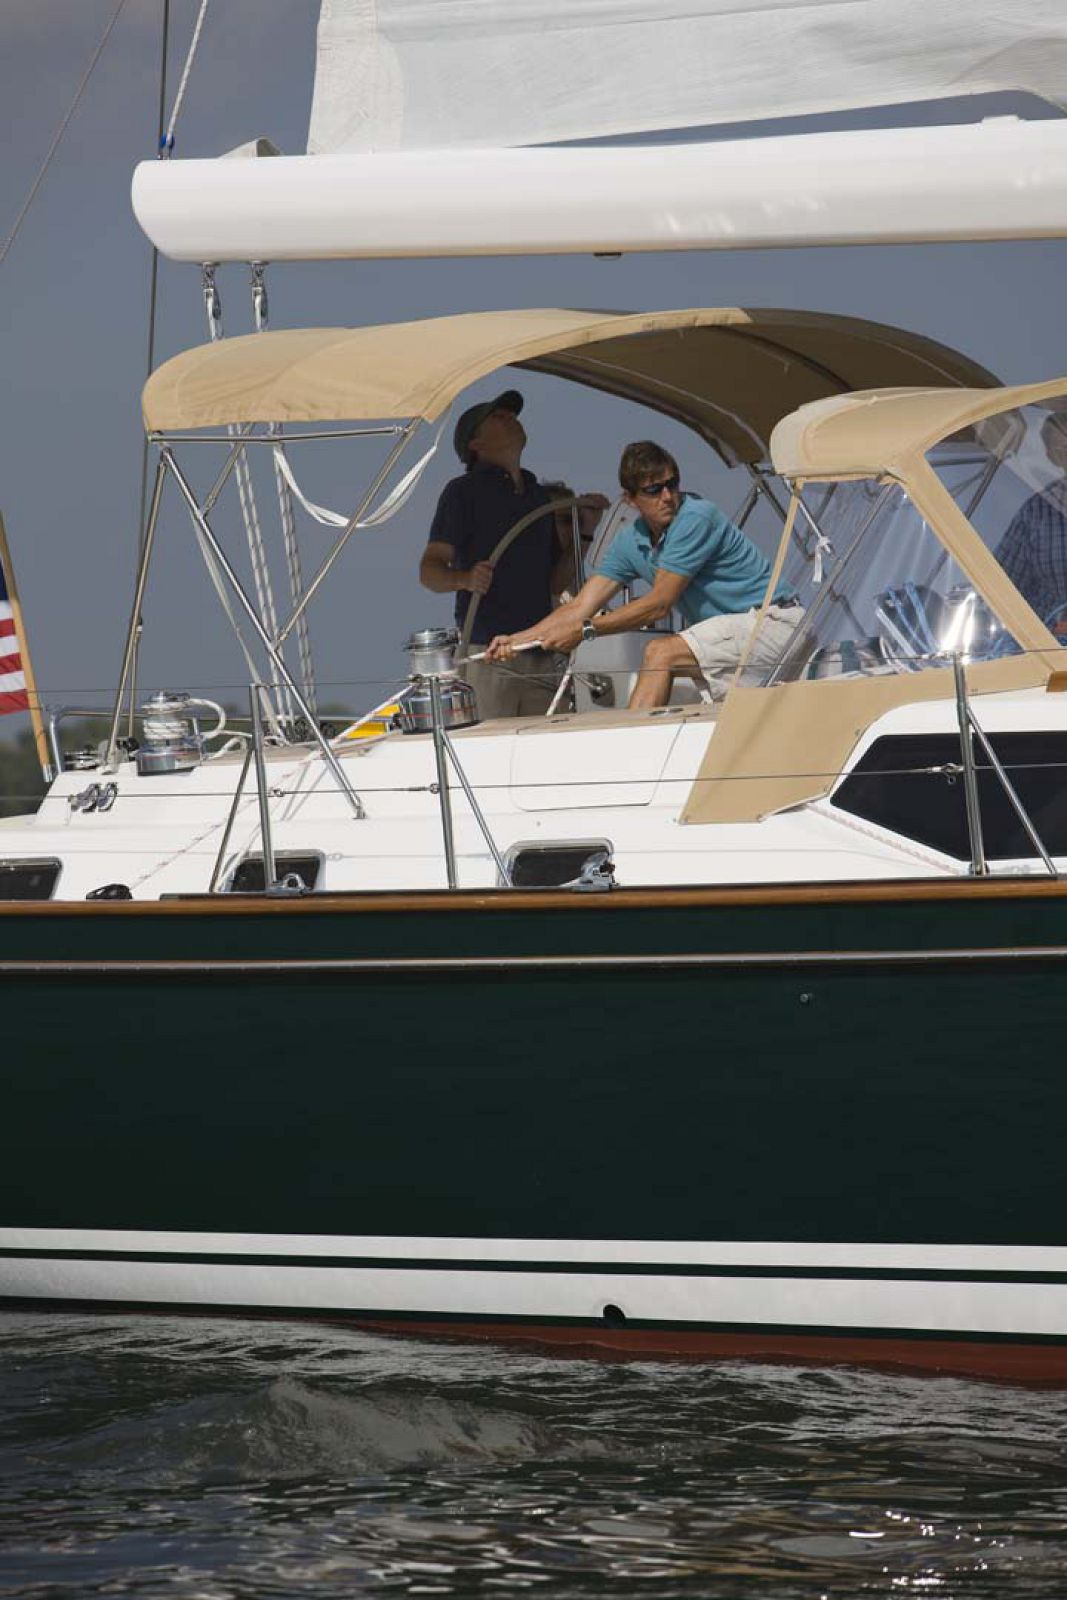 Tartan-Yachts-5300-Sailboat-Fun